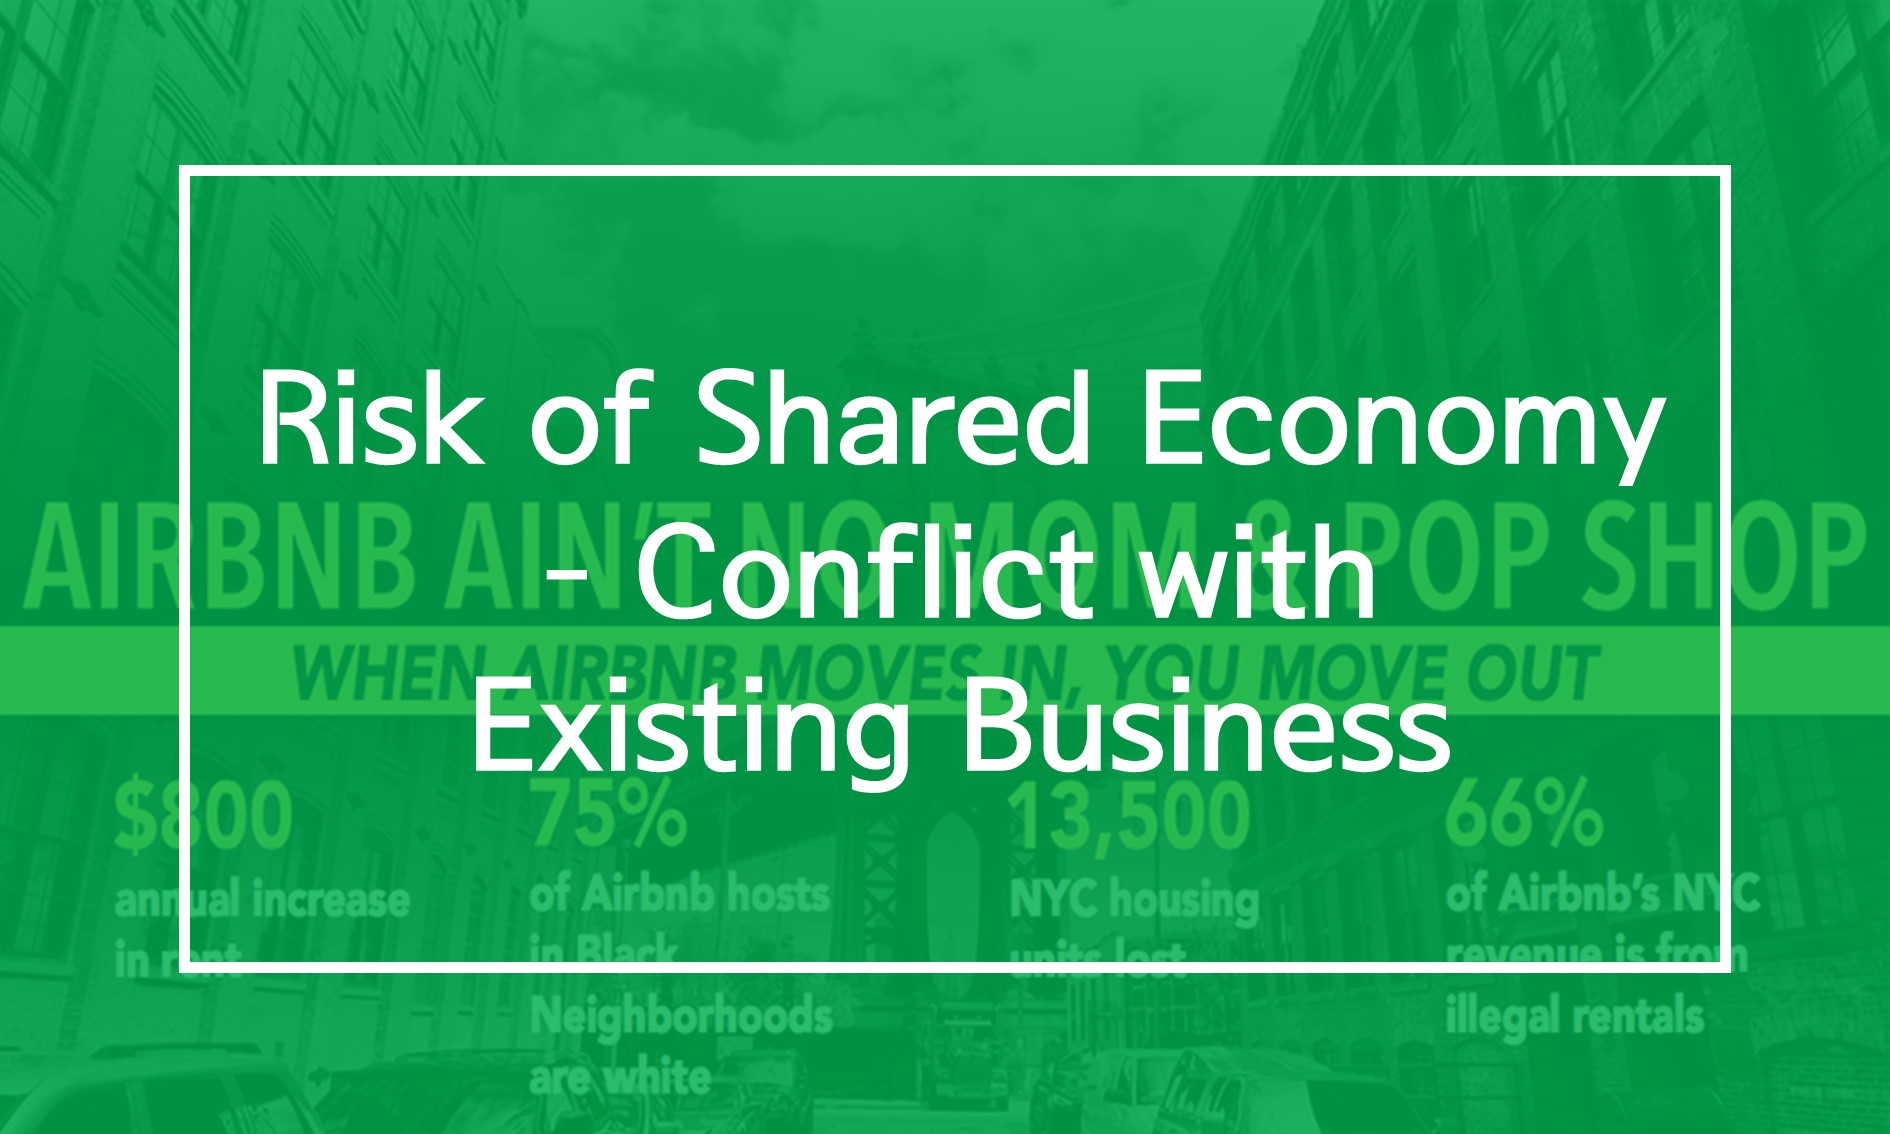 [Resources] Risk of Shared Economy – Conflict with Existing Business